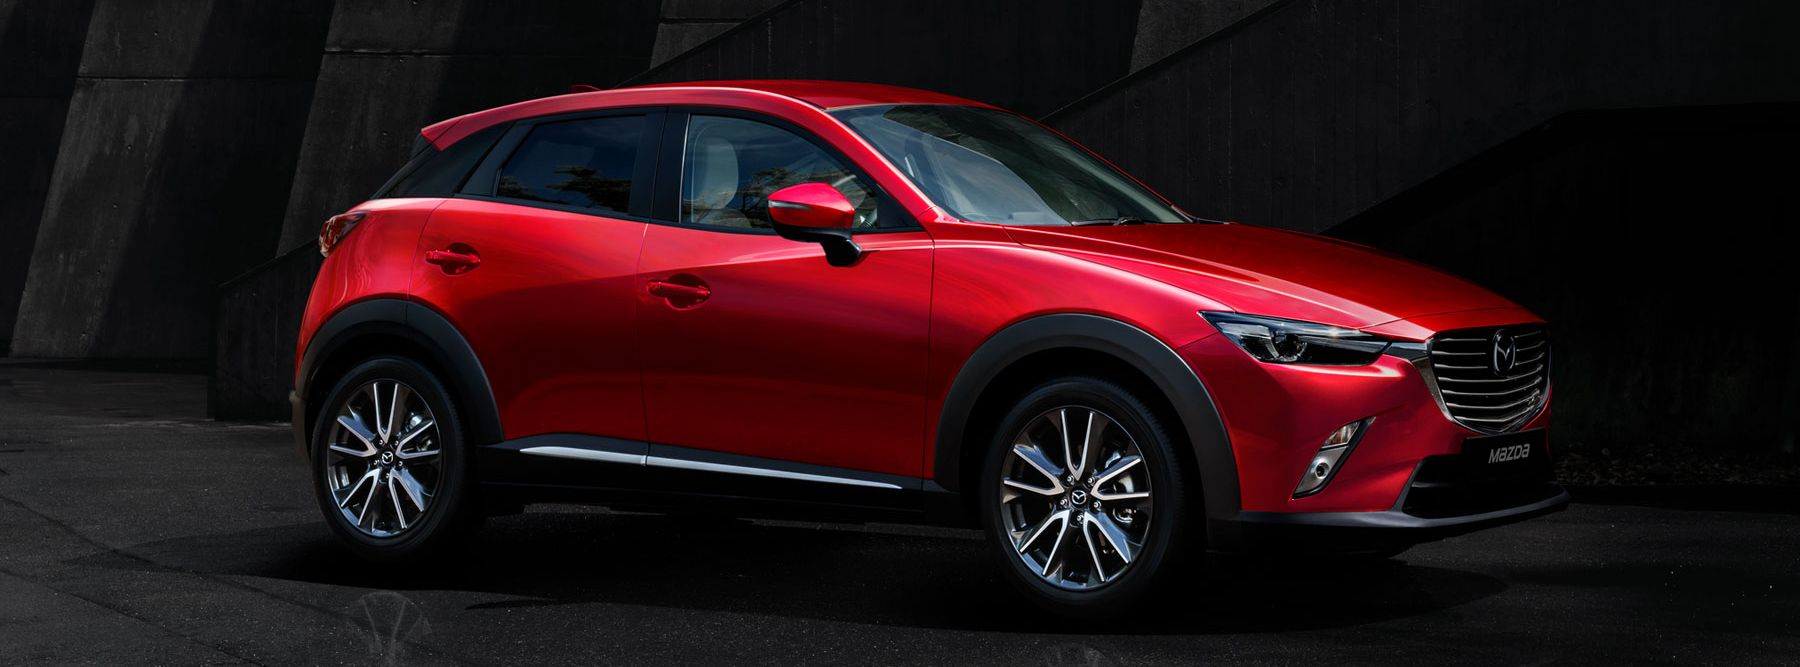 2018 Mazda CX-3 Financing in Sacramento, CA